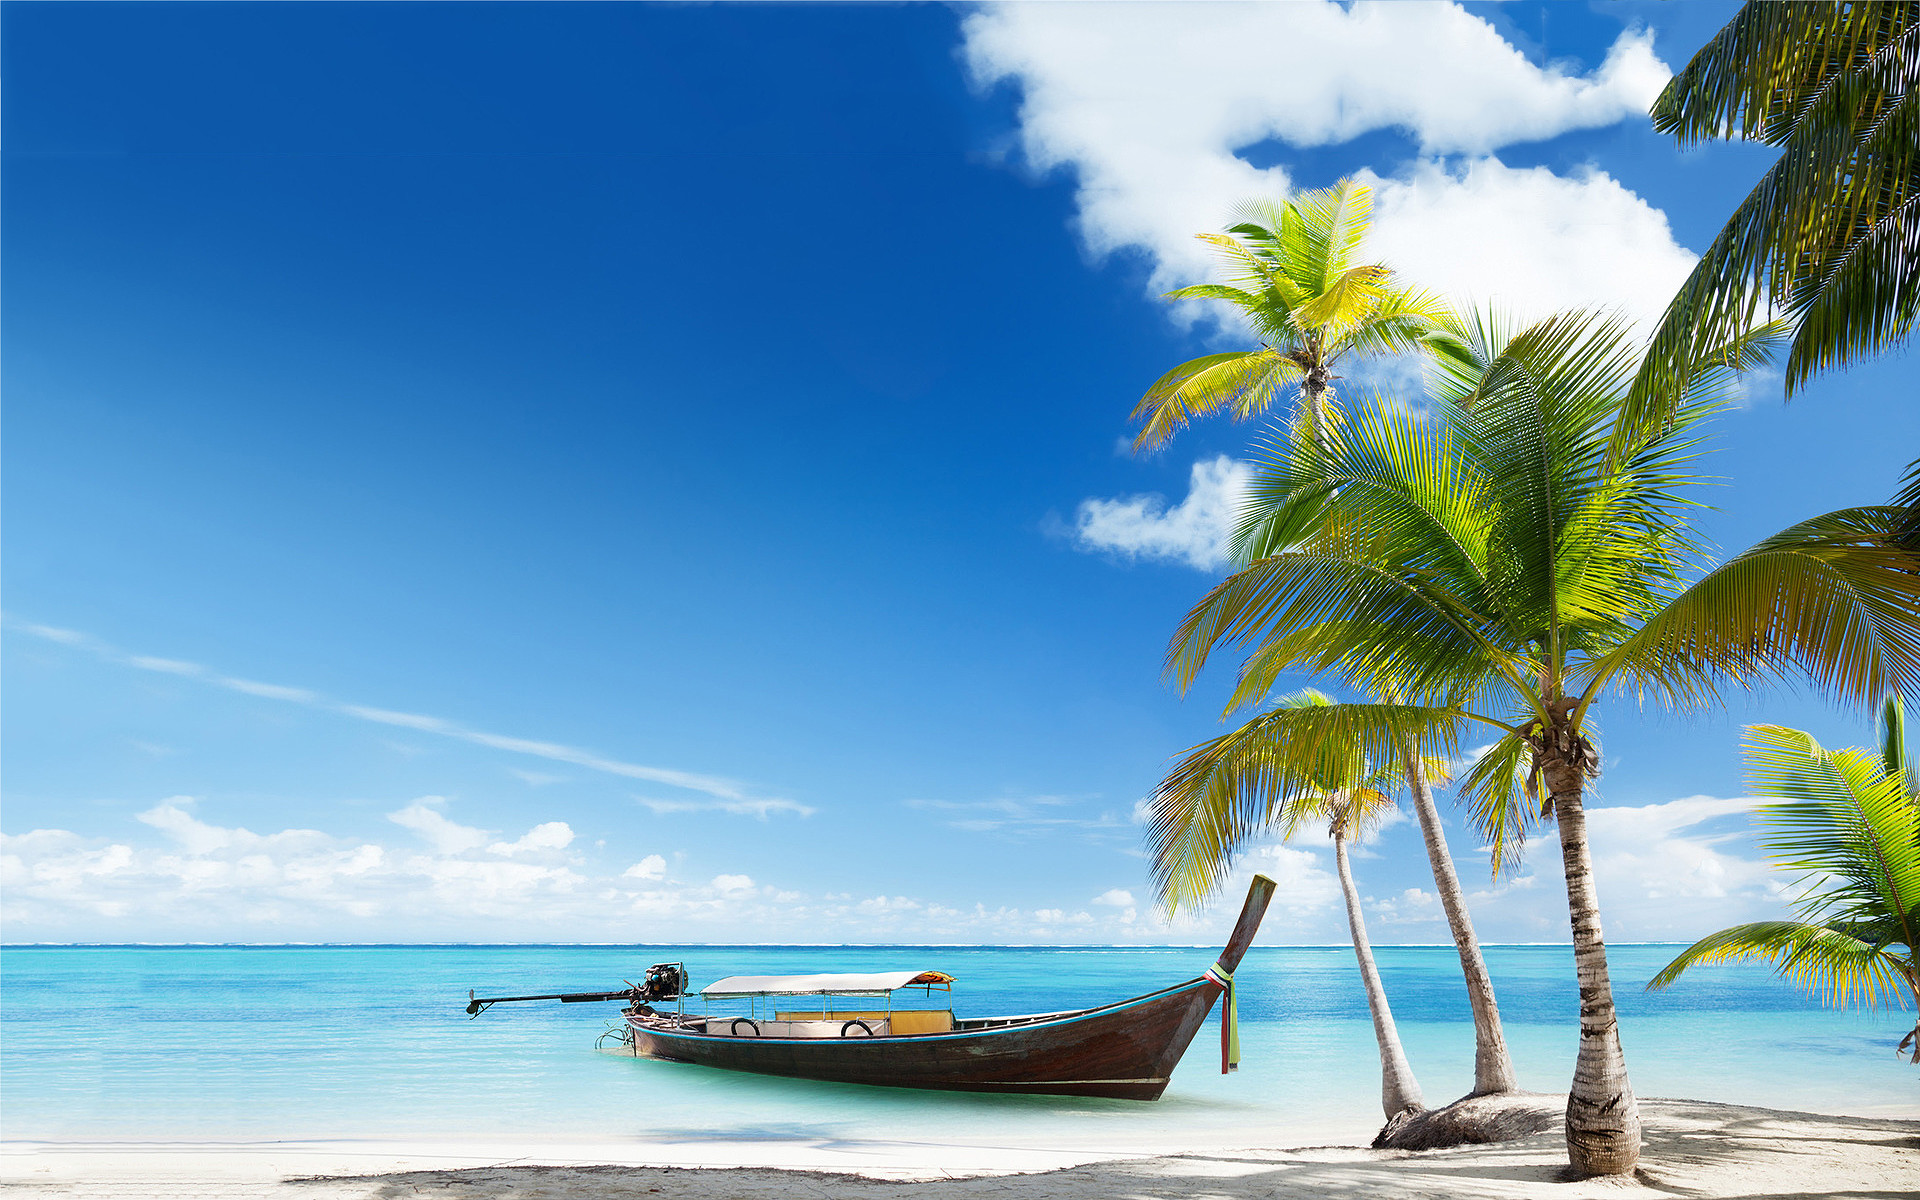 Tropical Beach Free Download